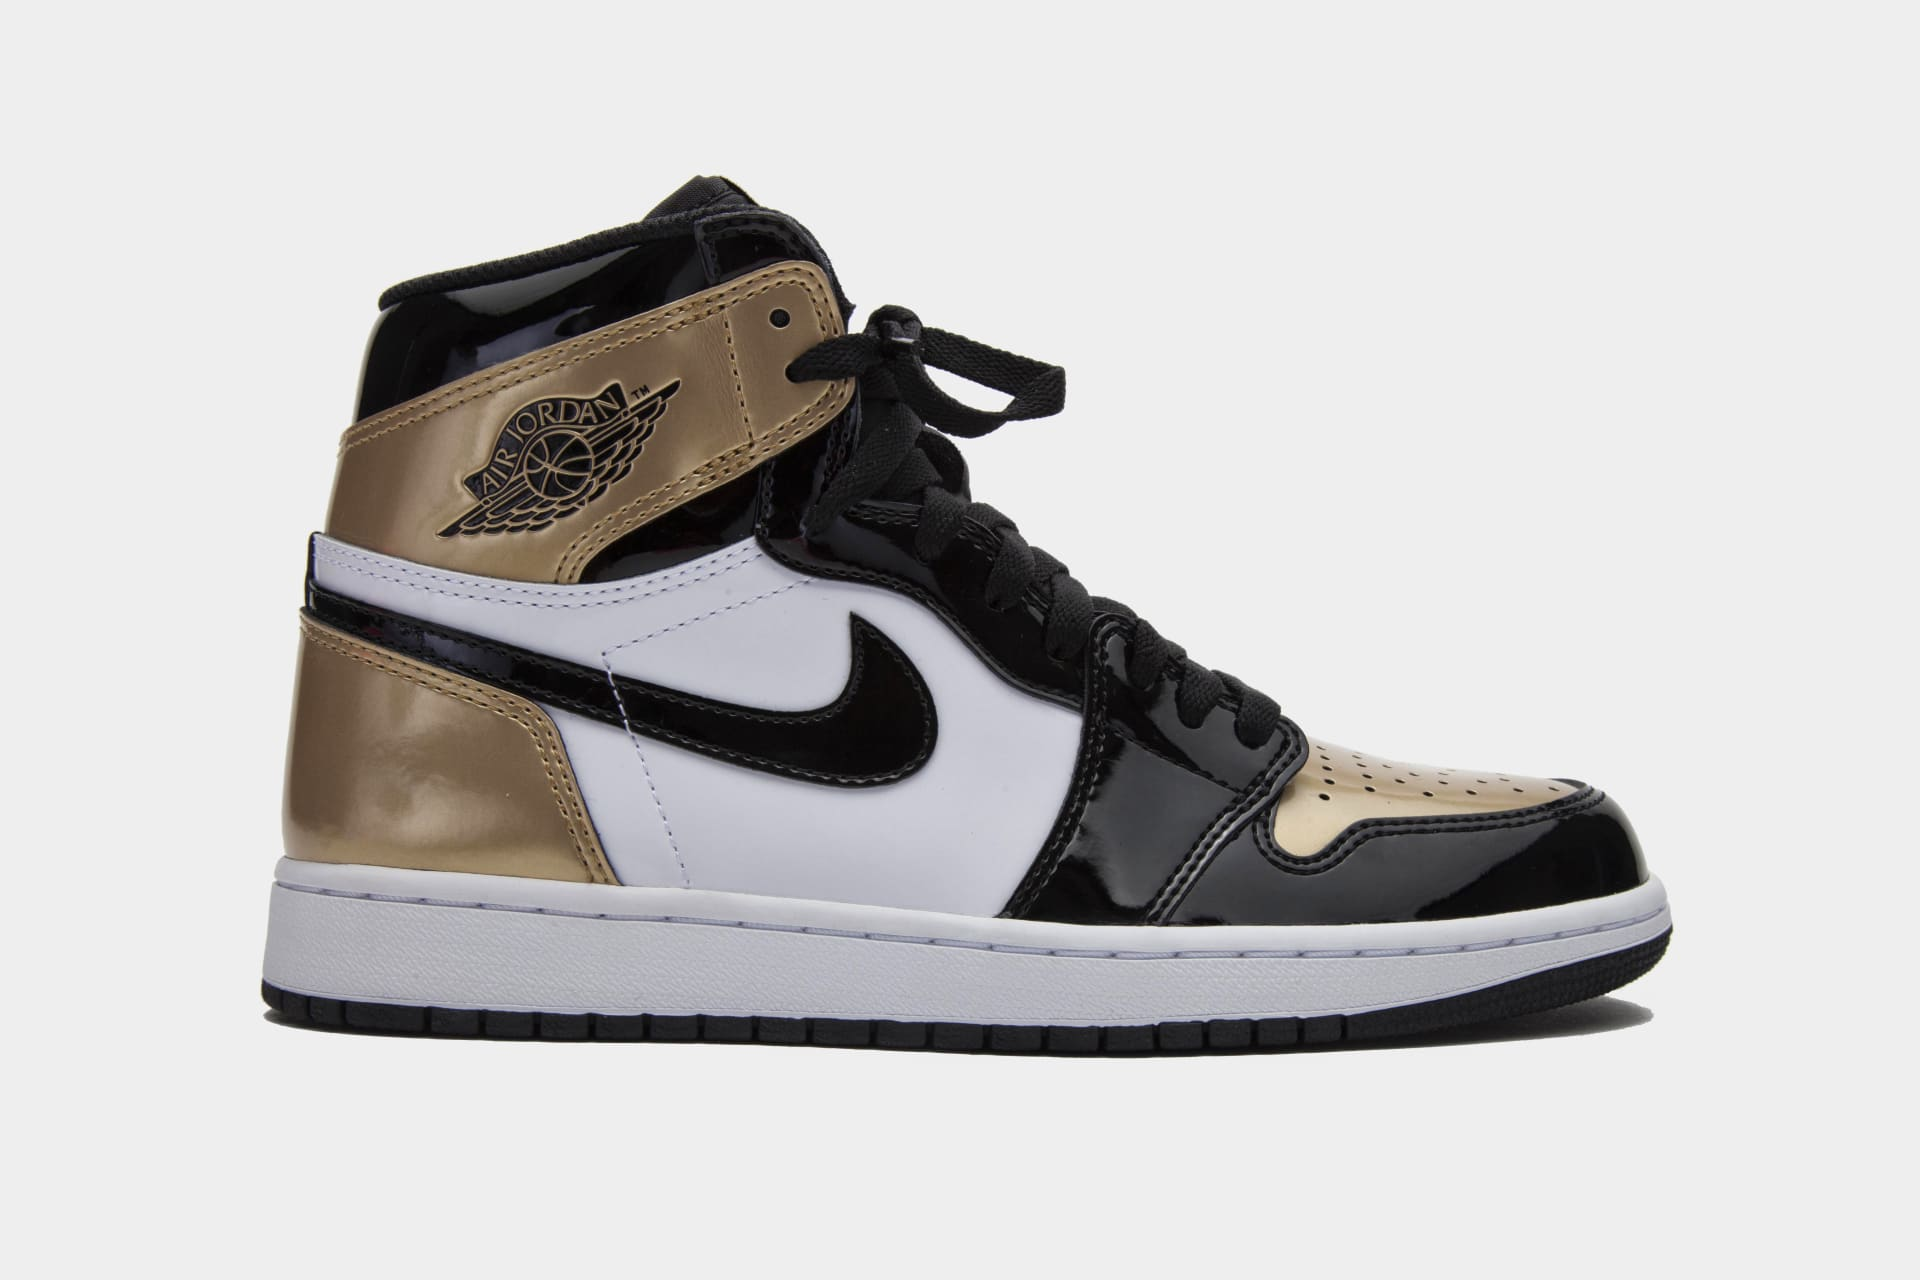 ac525a8bb49b1 Gold Top 3 Air Jordan 1s Union Release at ComplexCon